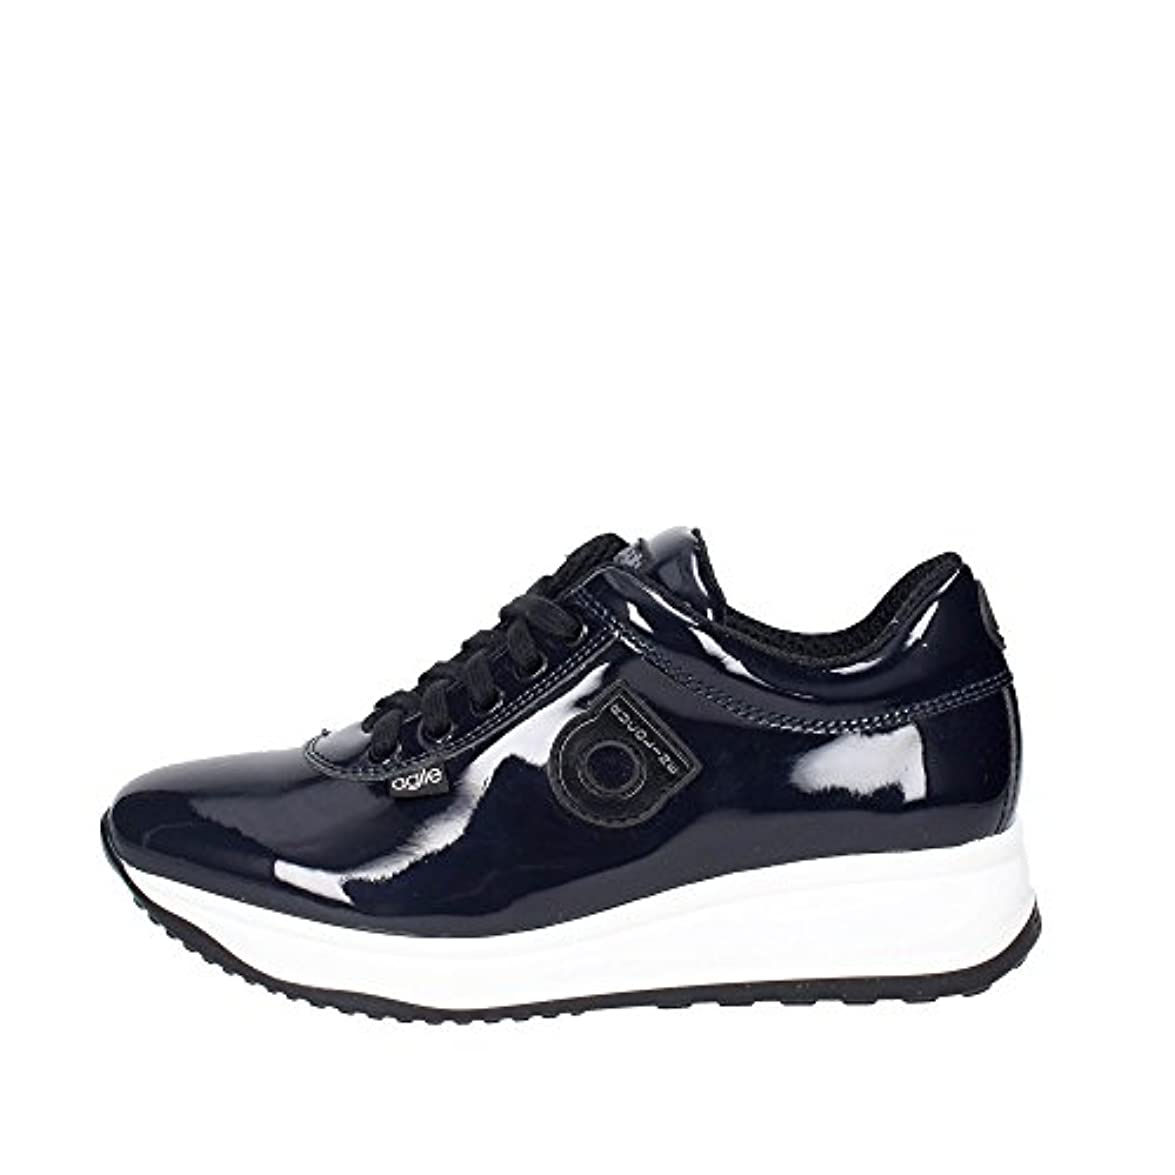 Agile By Rucoline 1315 16 Sneakers Bassa Donna